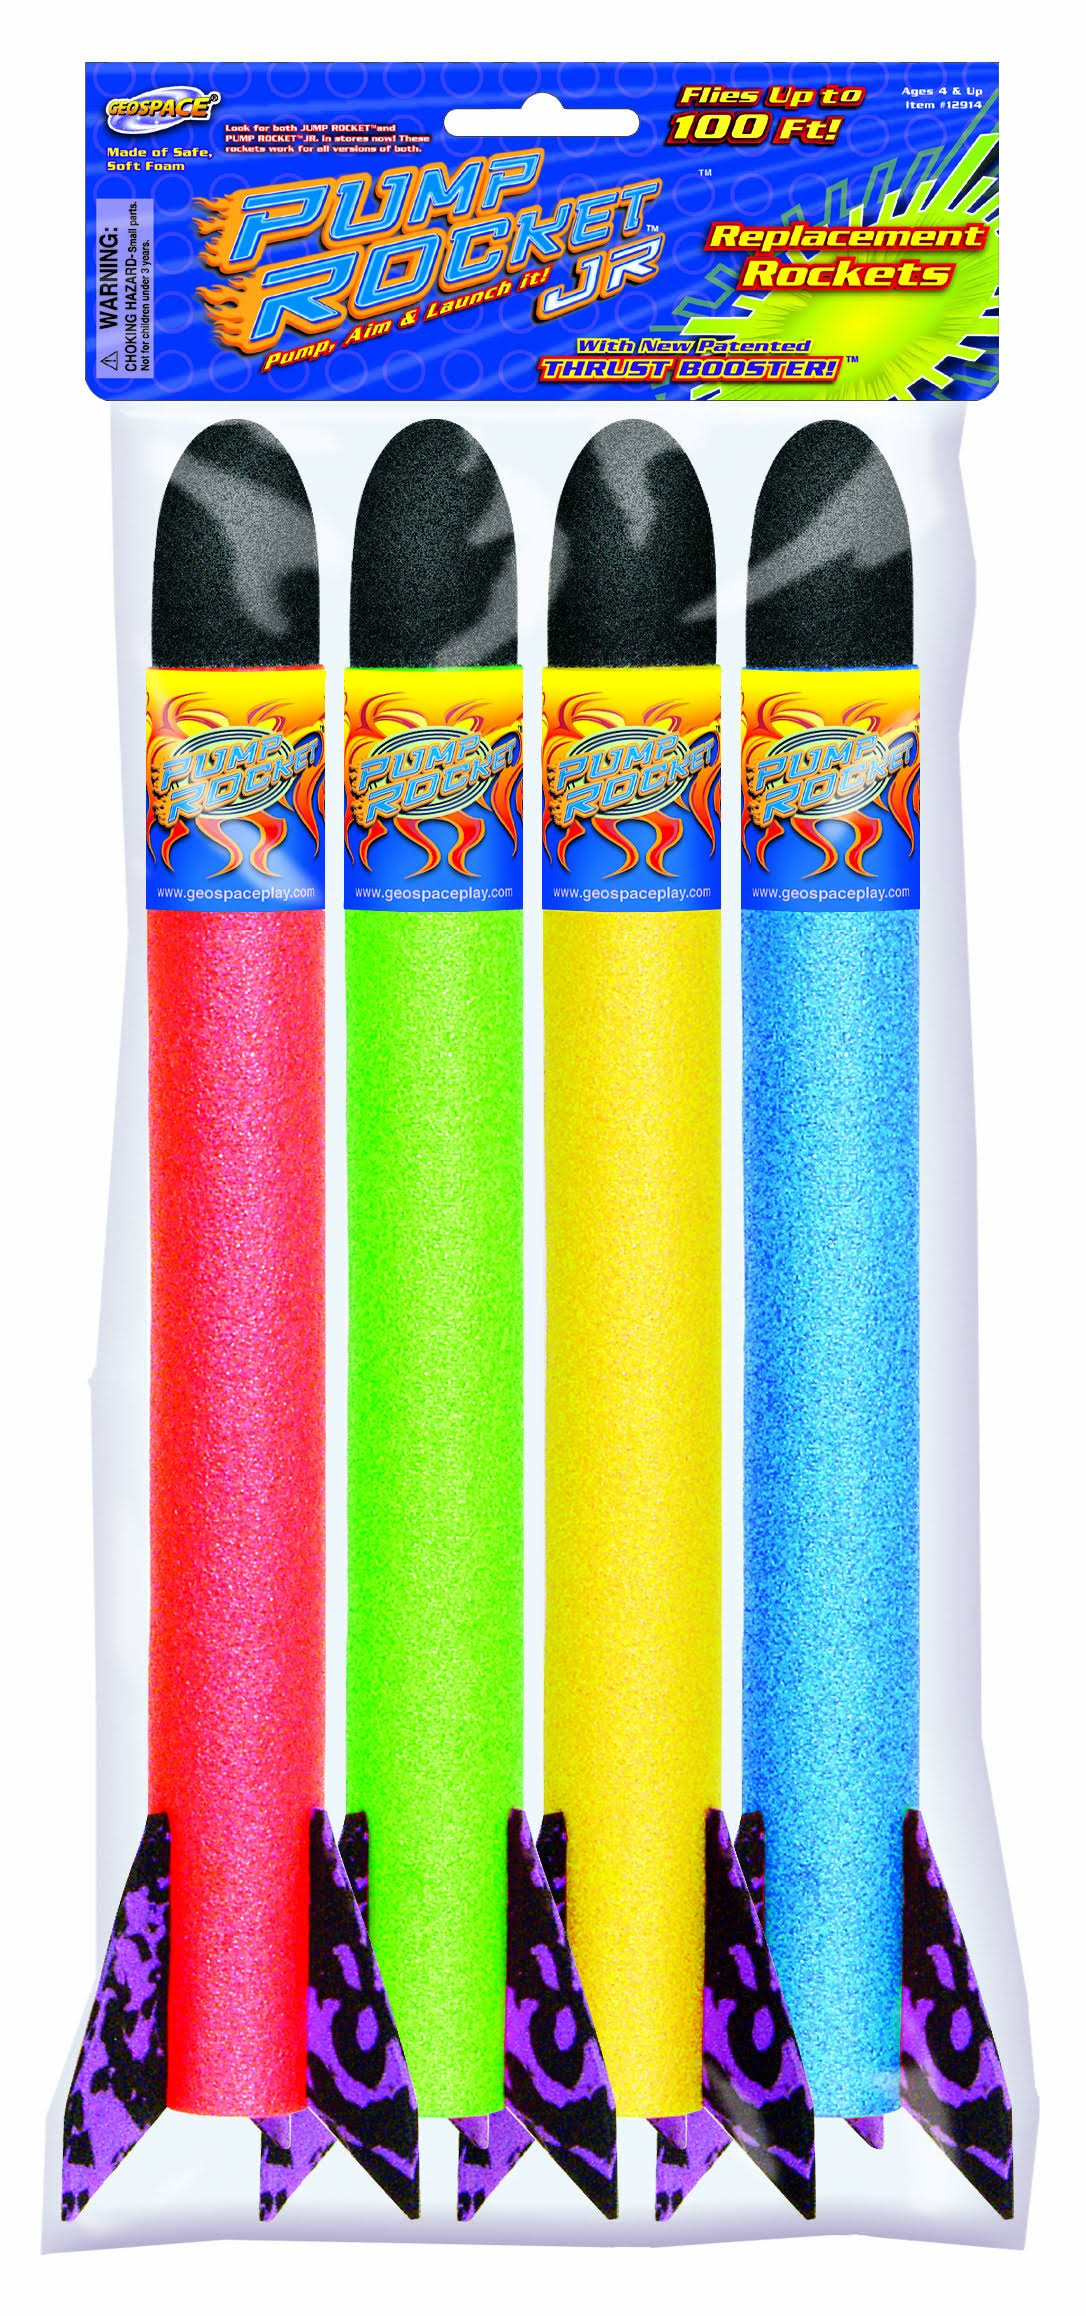 Geospace Jr Replacement Rockets - 4pk